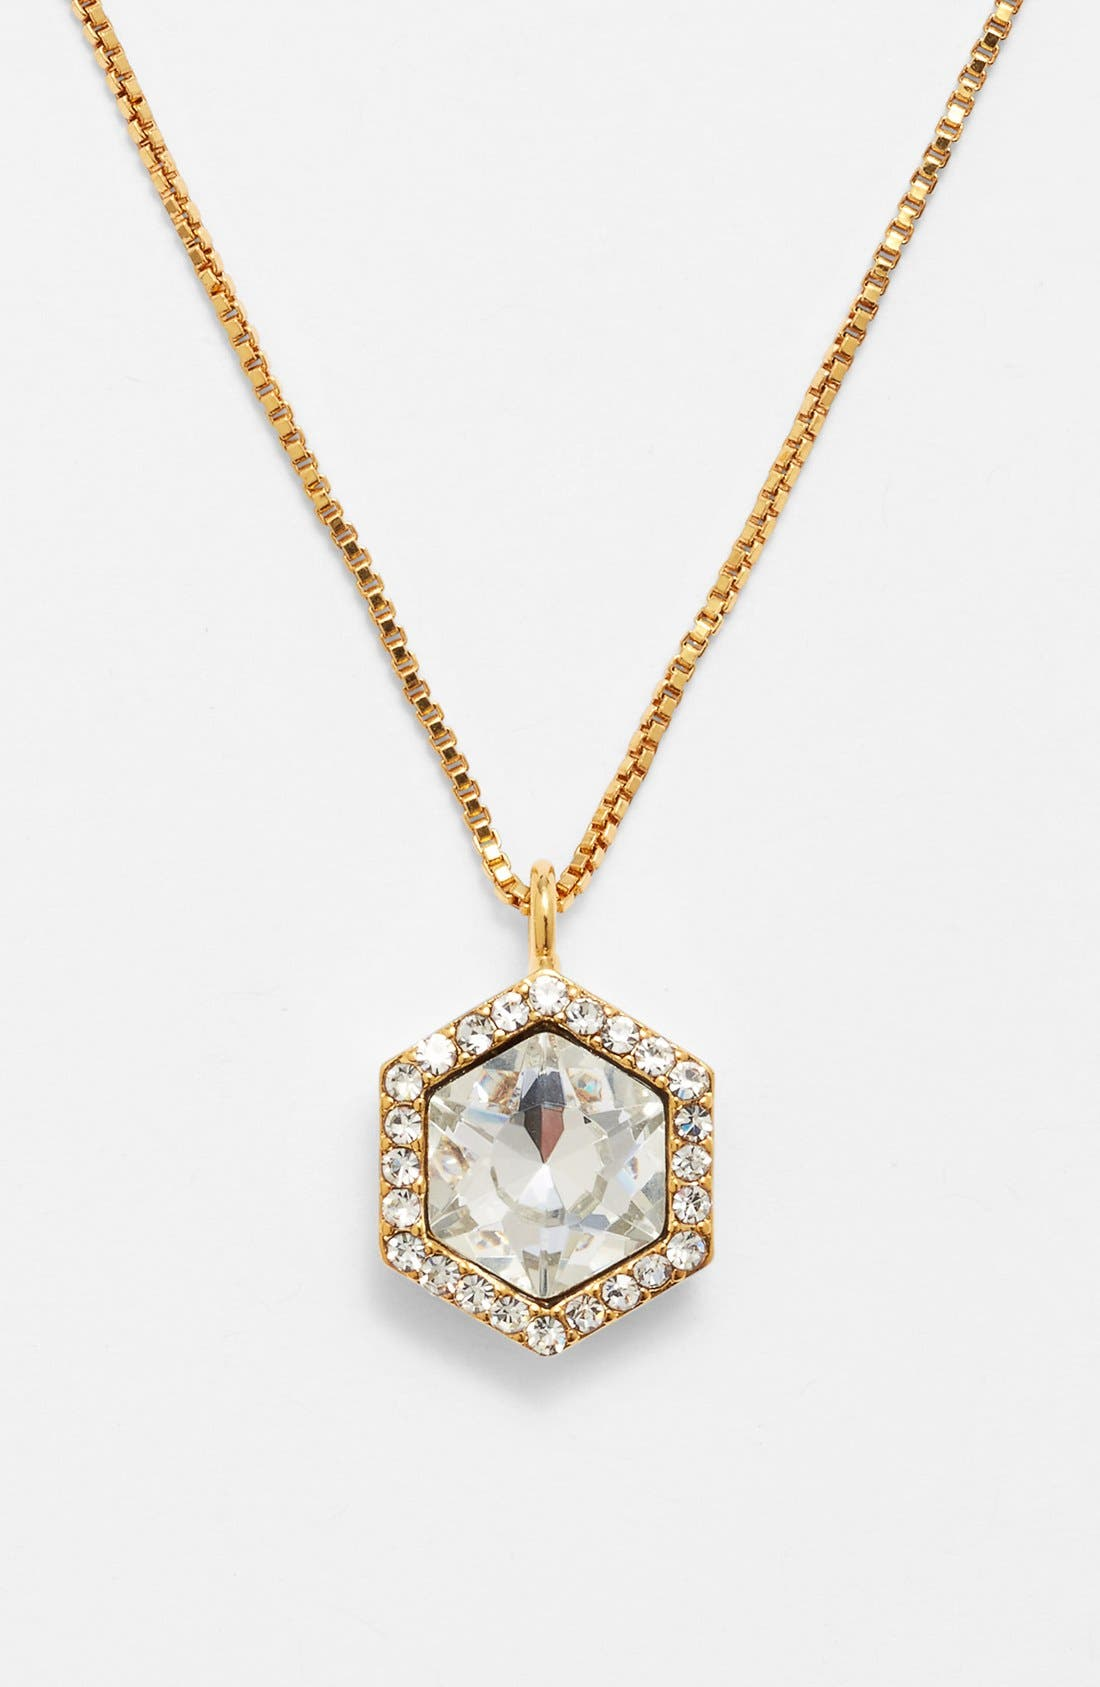 Main Image - Vince Camuto 'Diamonds in the Sky' Crystal Pendant Necklace